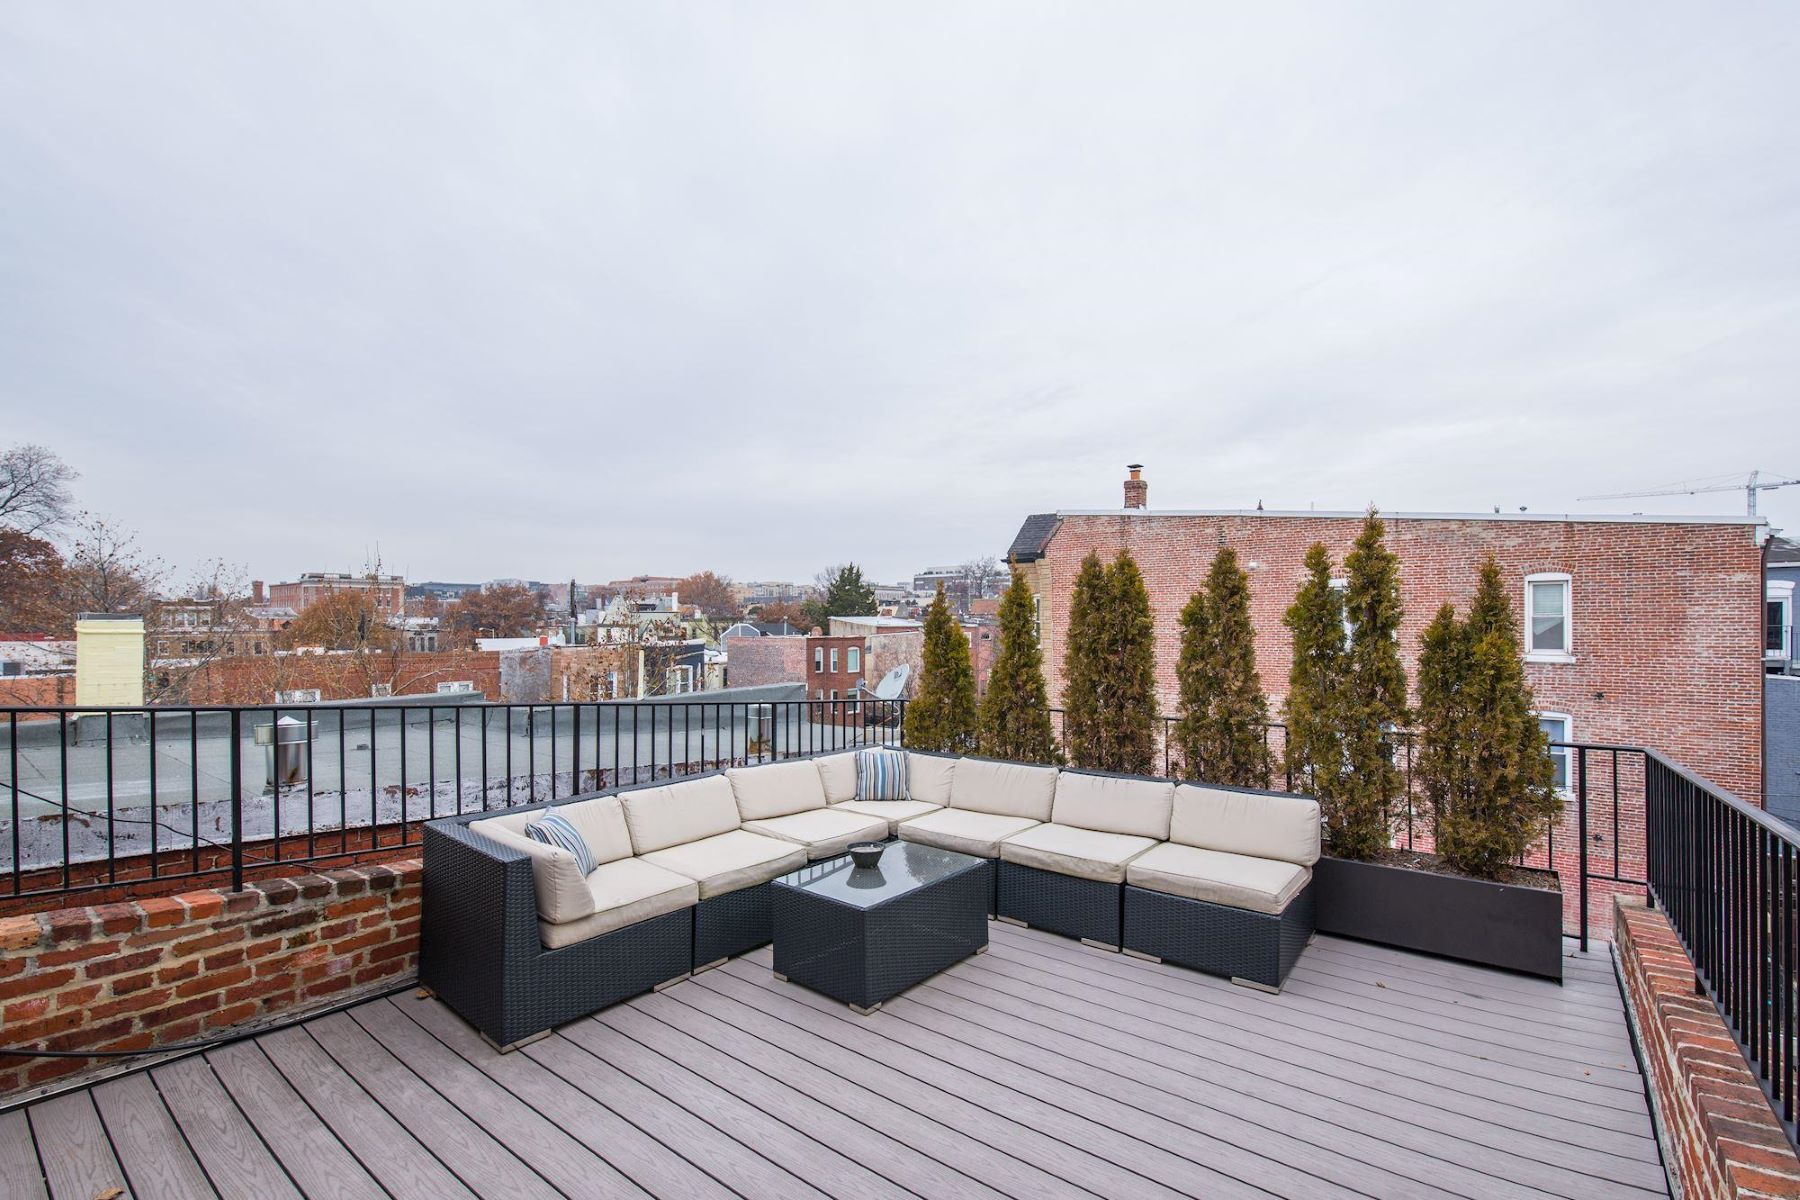 Additional photo for property listing at 947 S St NW 947 S St NW Washington, District Of Columbia 20001 United States